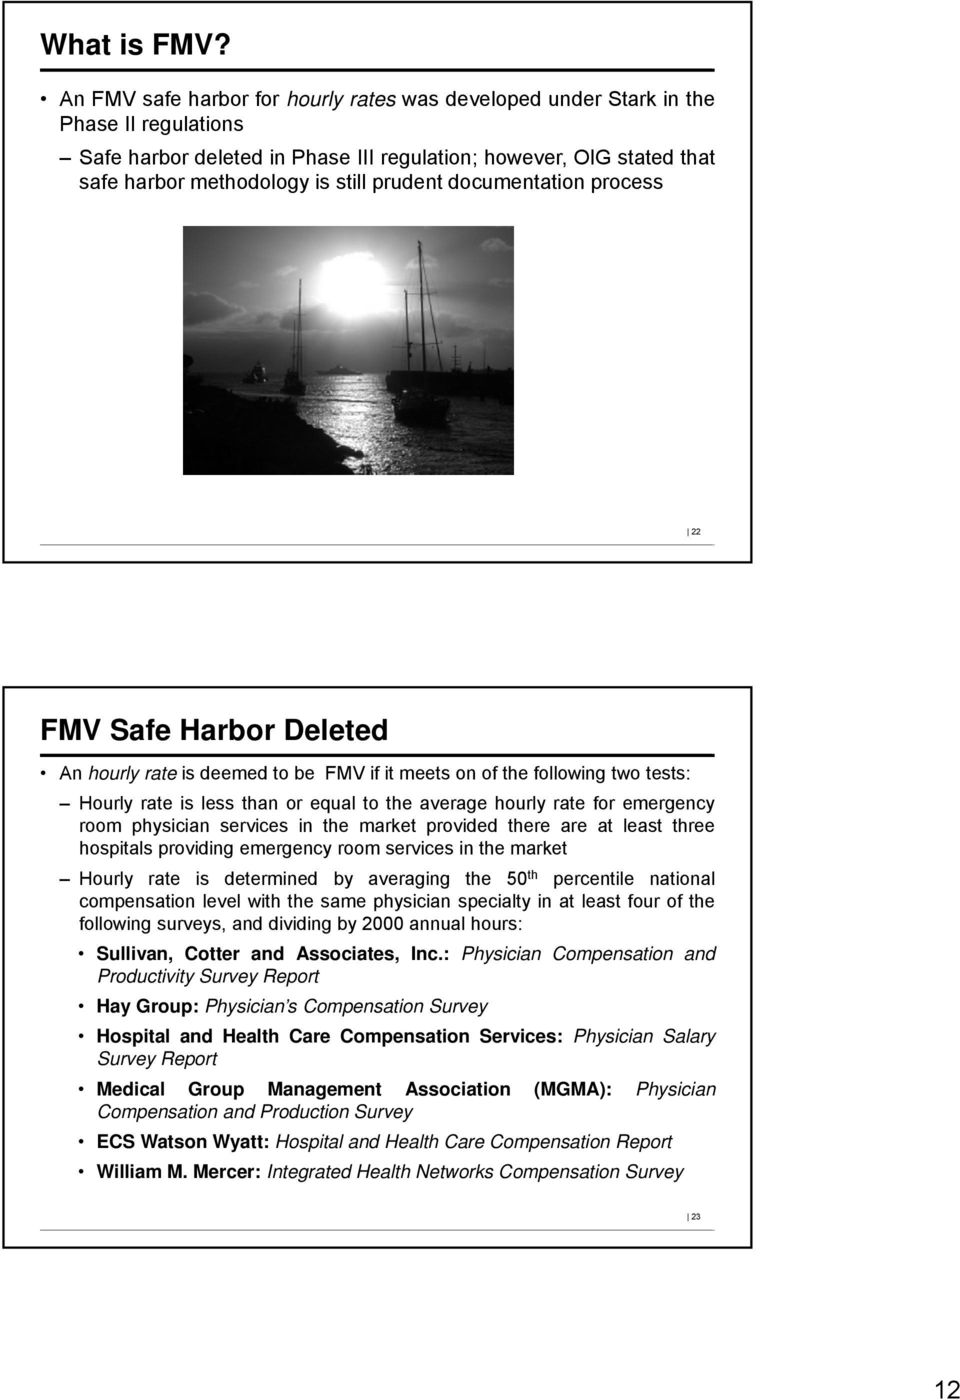 prudent documentation process 22 FMV Safe Harbor Deleted An hourly rate is deemed to be FMV if it meets on of the following two tests: Hourly rate is less than or equal to the average hourly rate for